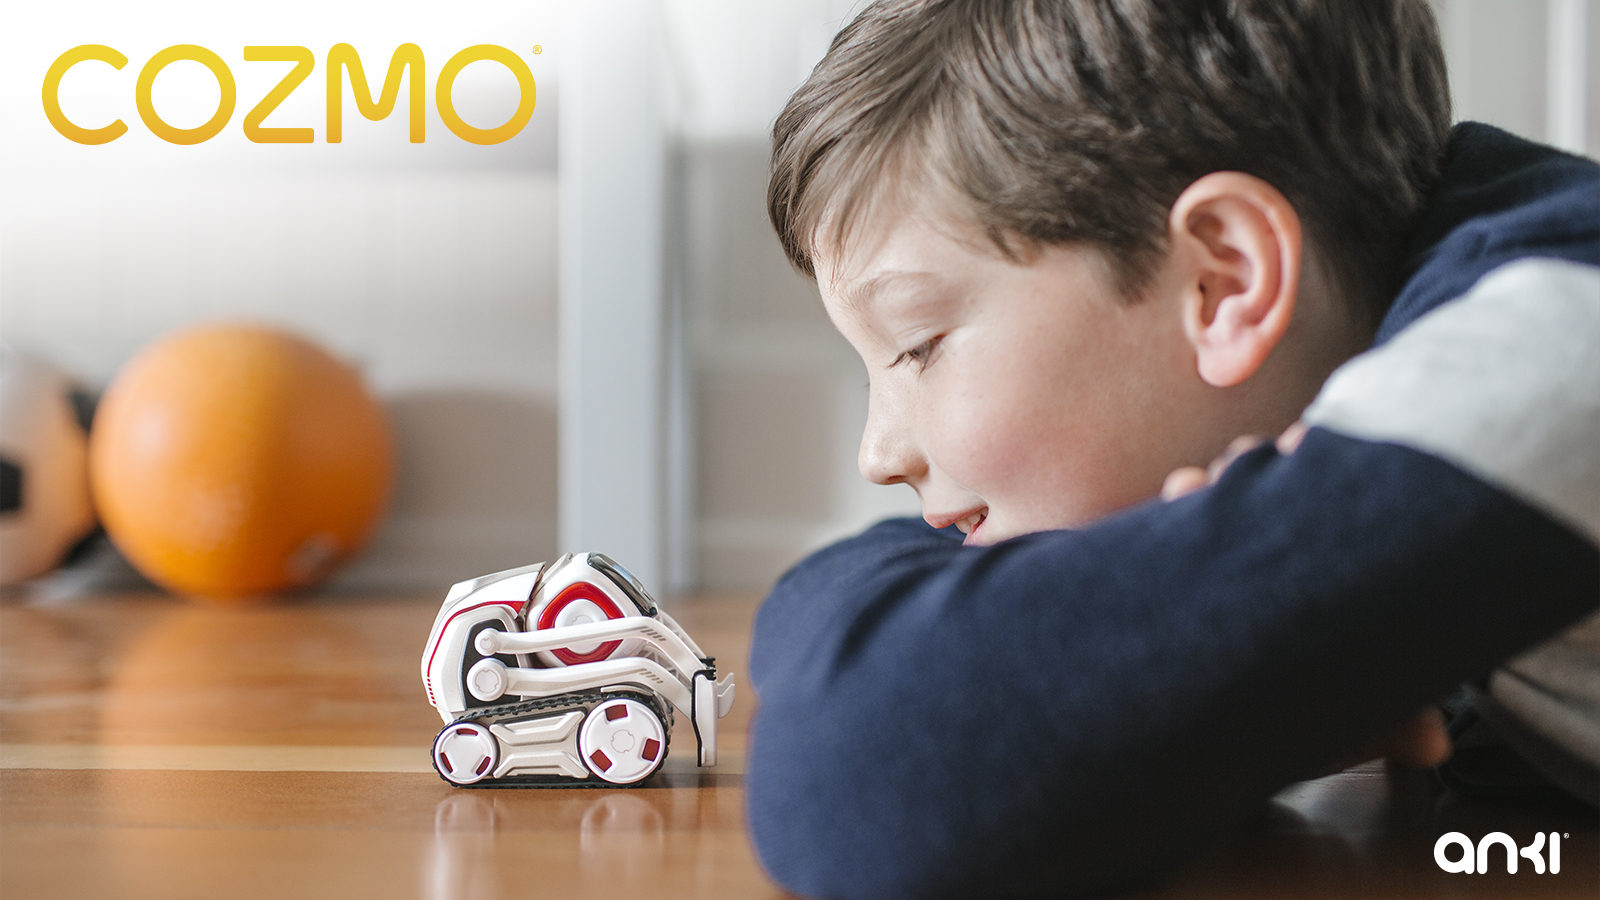 A young boy lies face to face on the floor with a Cozmo robot.